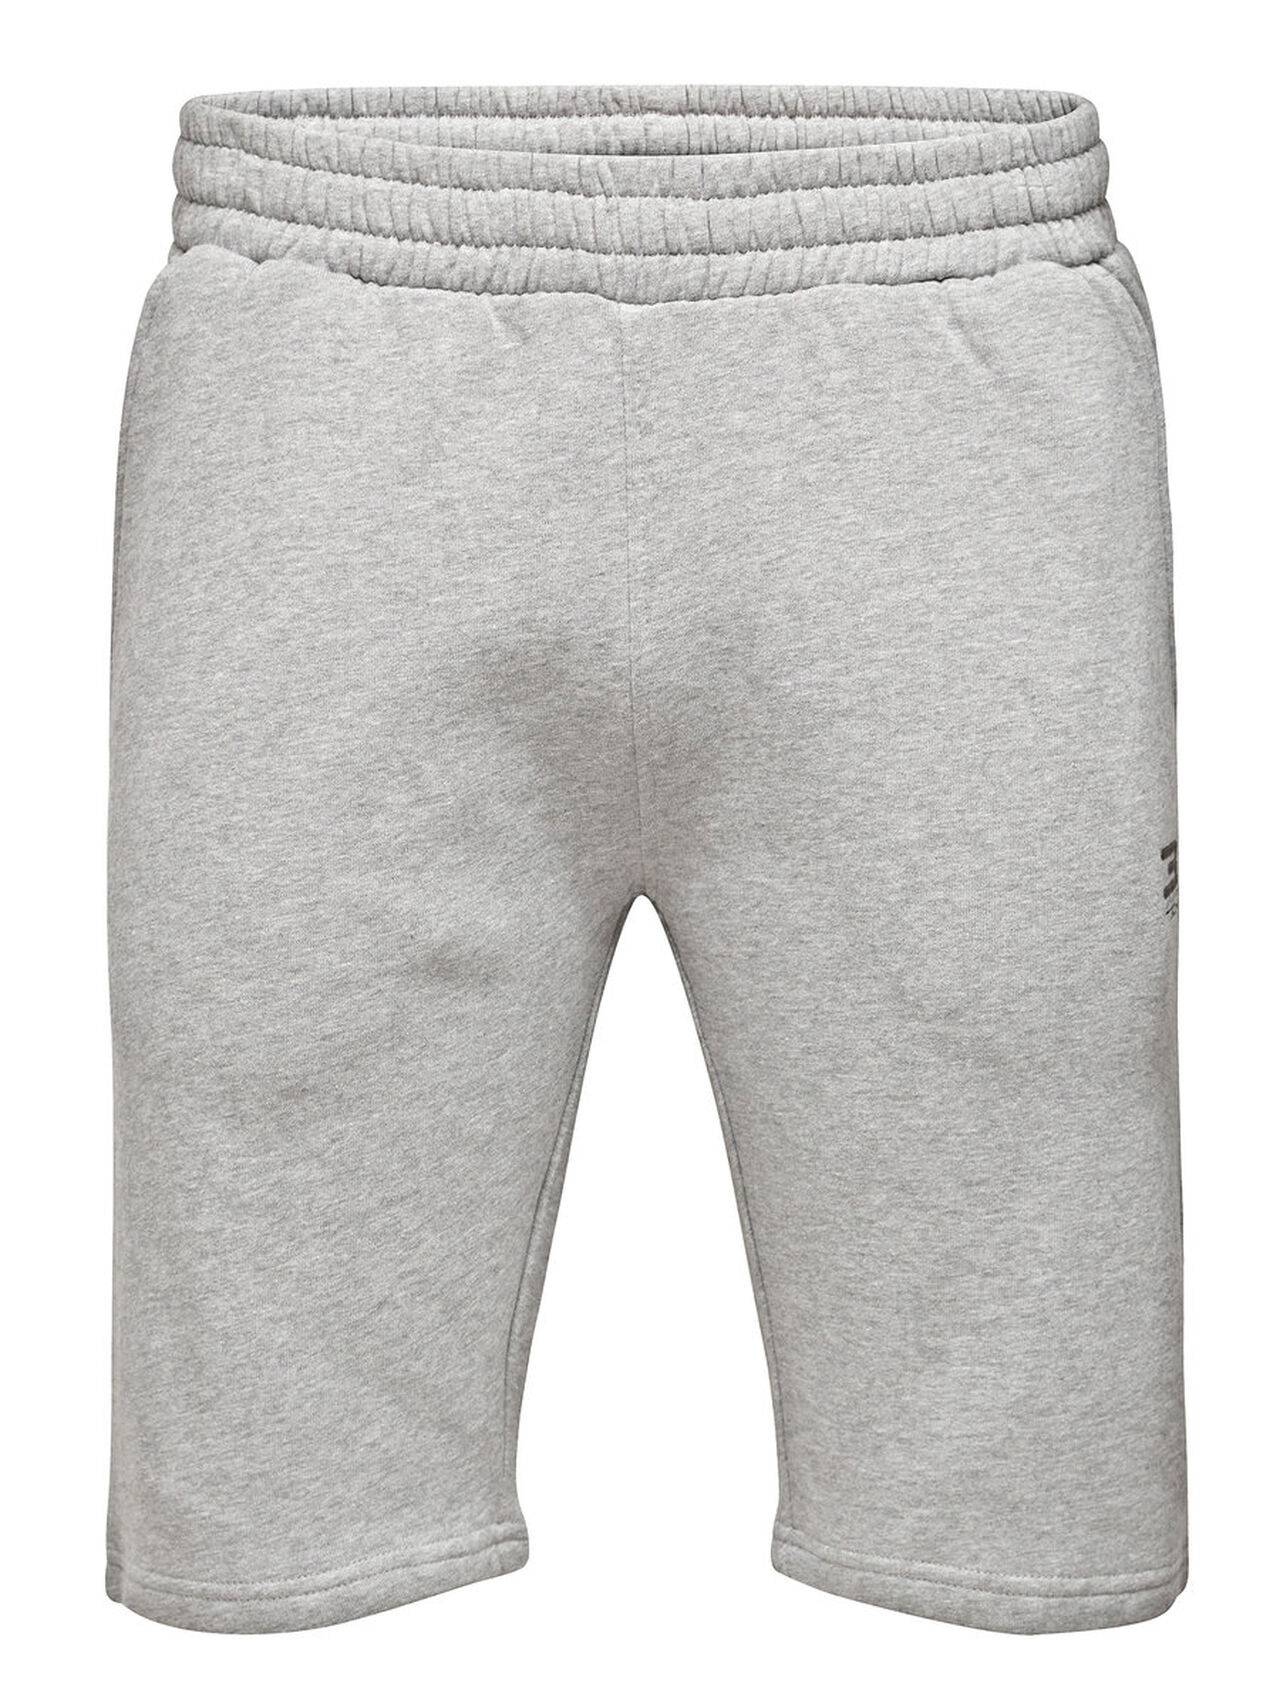 Jack & Jones Sports Sweat Shorts LightGreyMelange